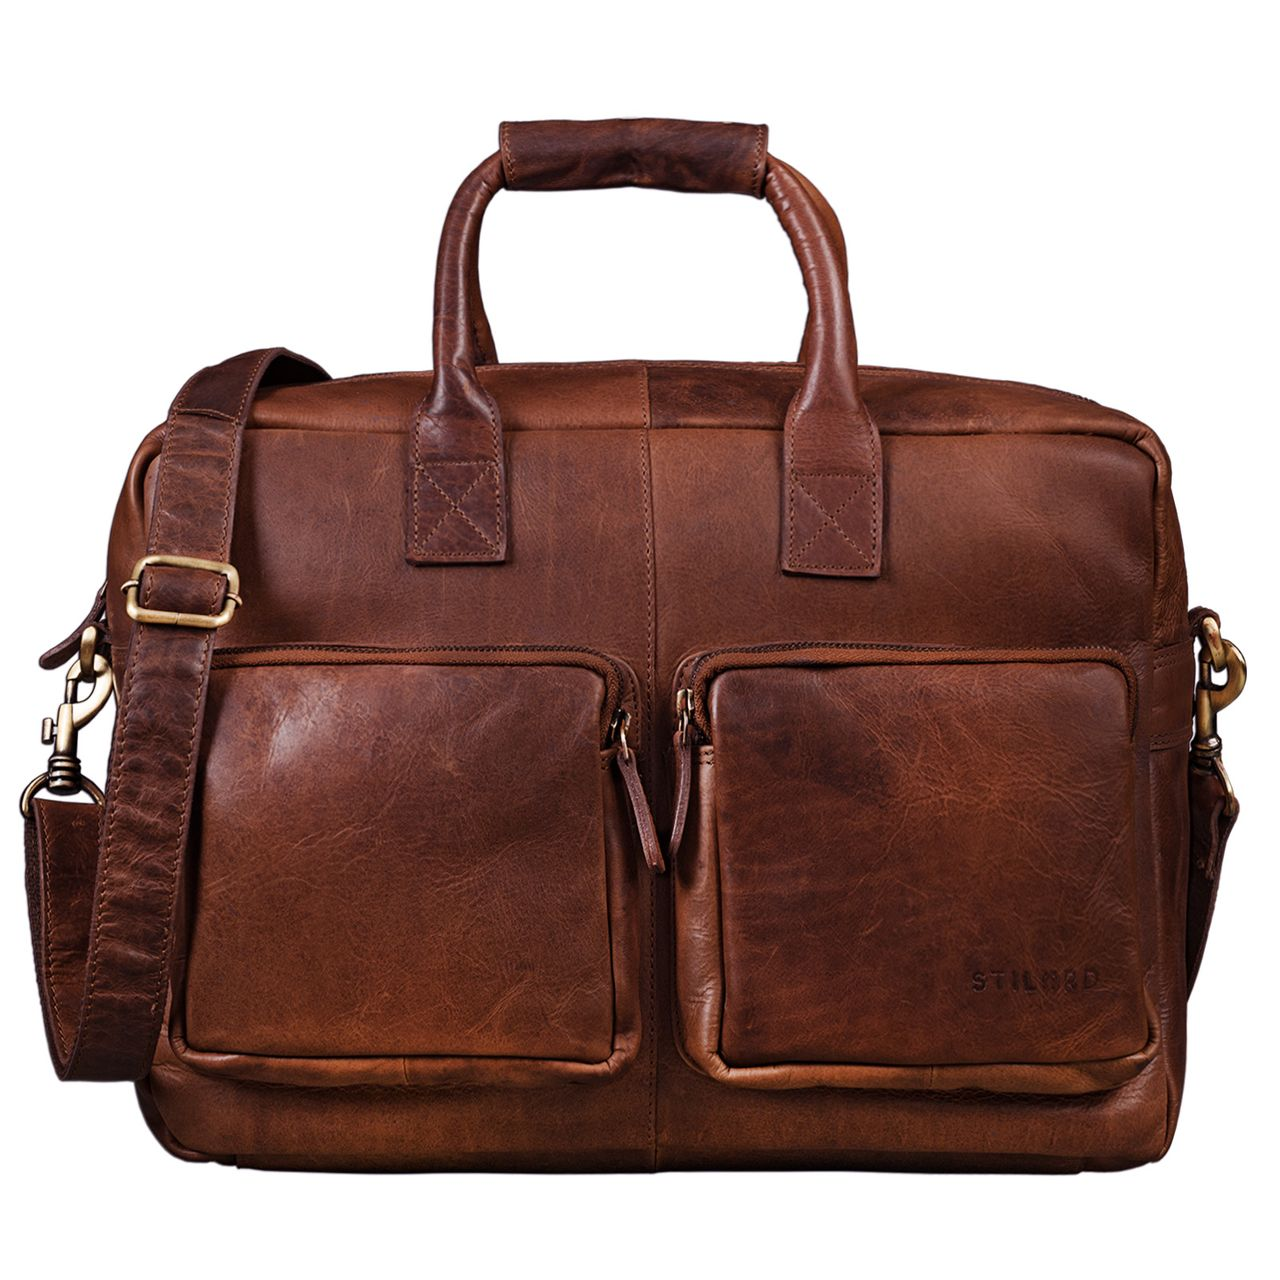 d5034b0f400d5 A great step ahead – the STILORD briefcase leather